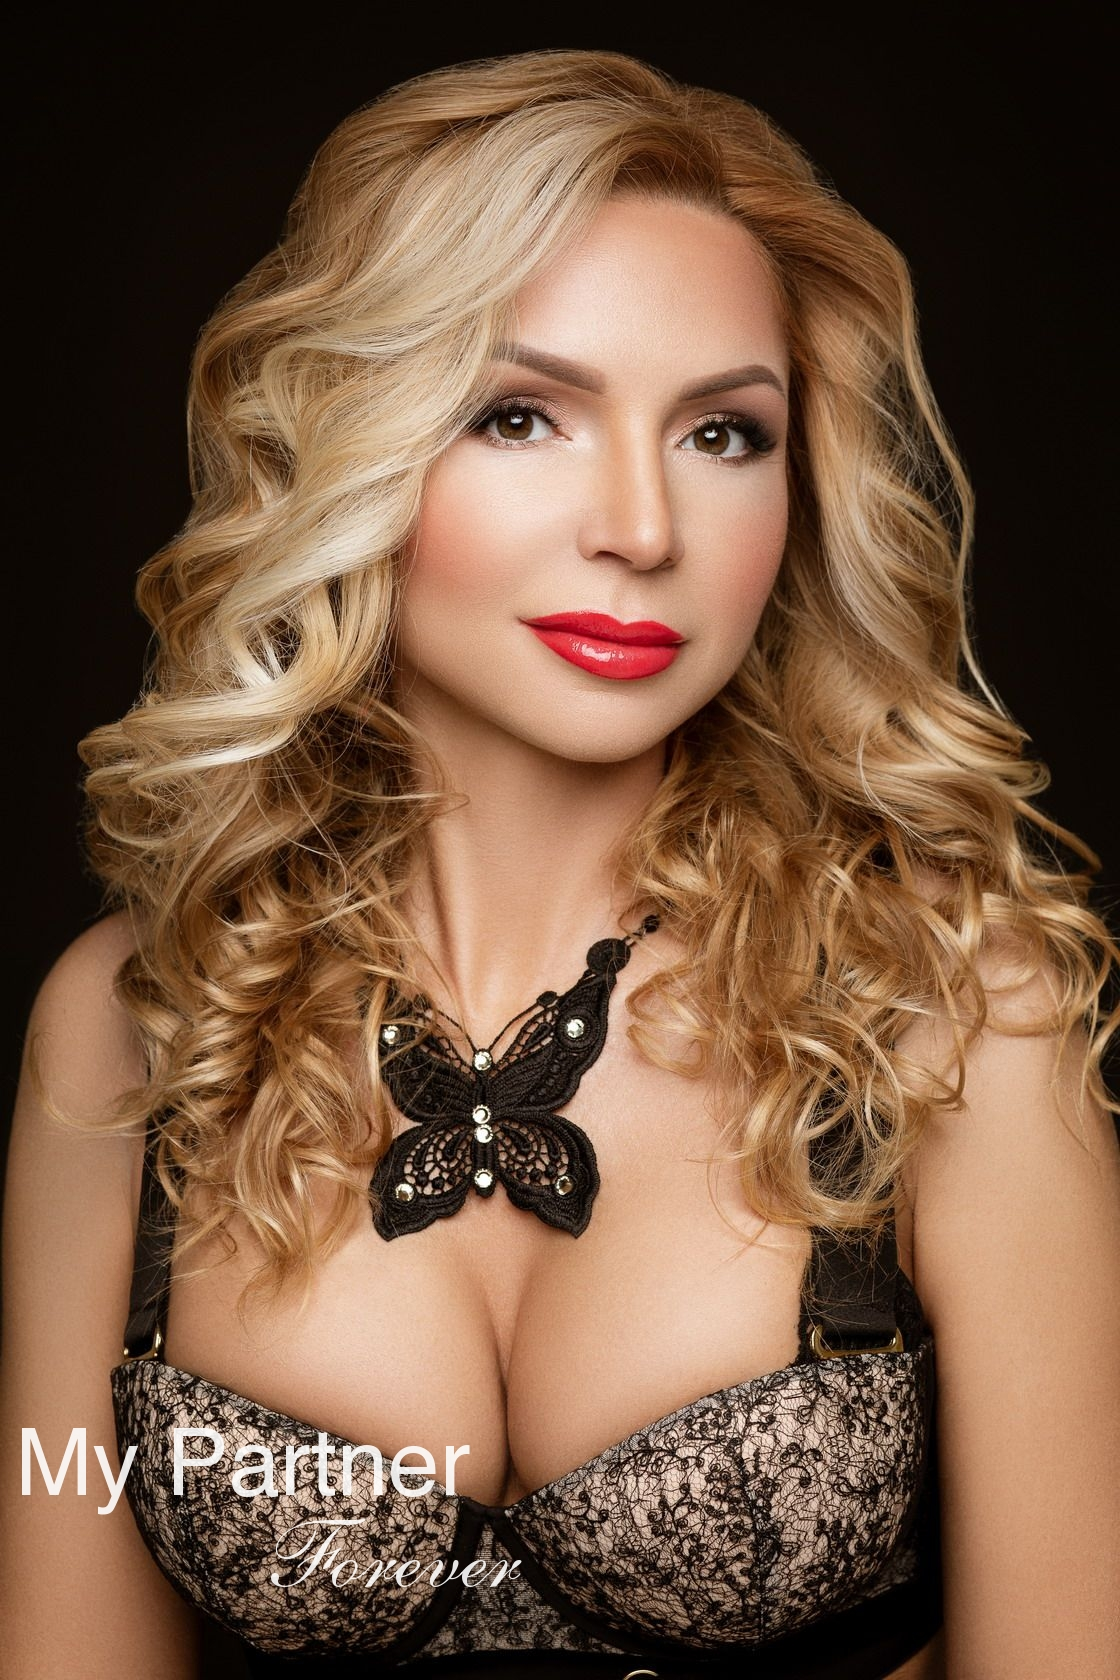 Stunning Girl from Belarus - Tatiyana from Minsk, Belarus